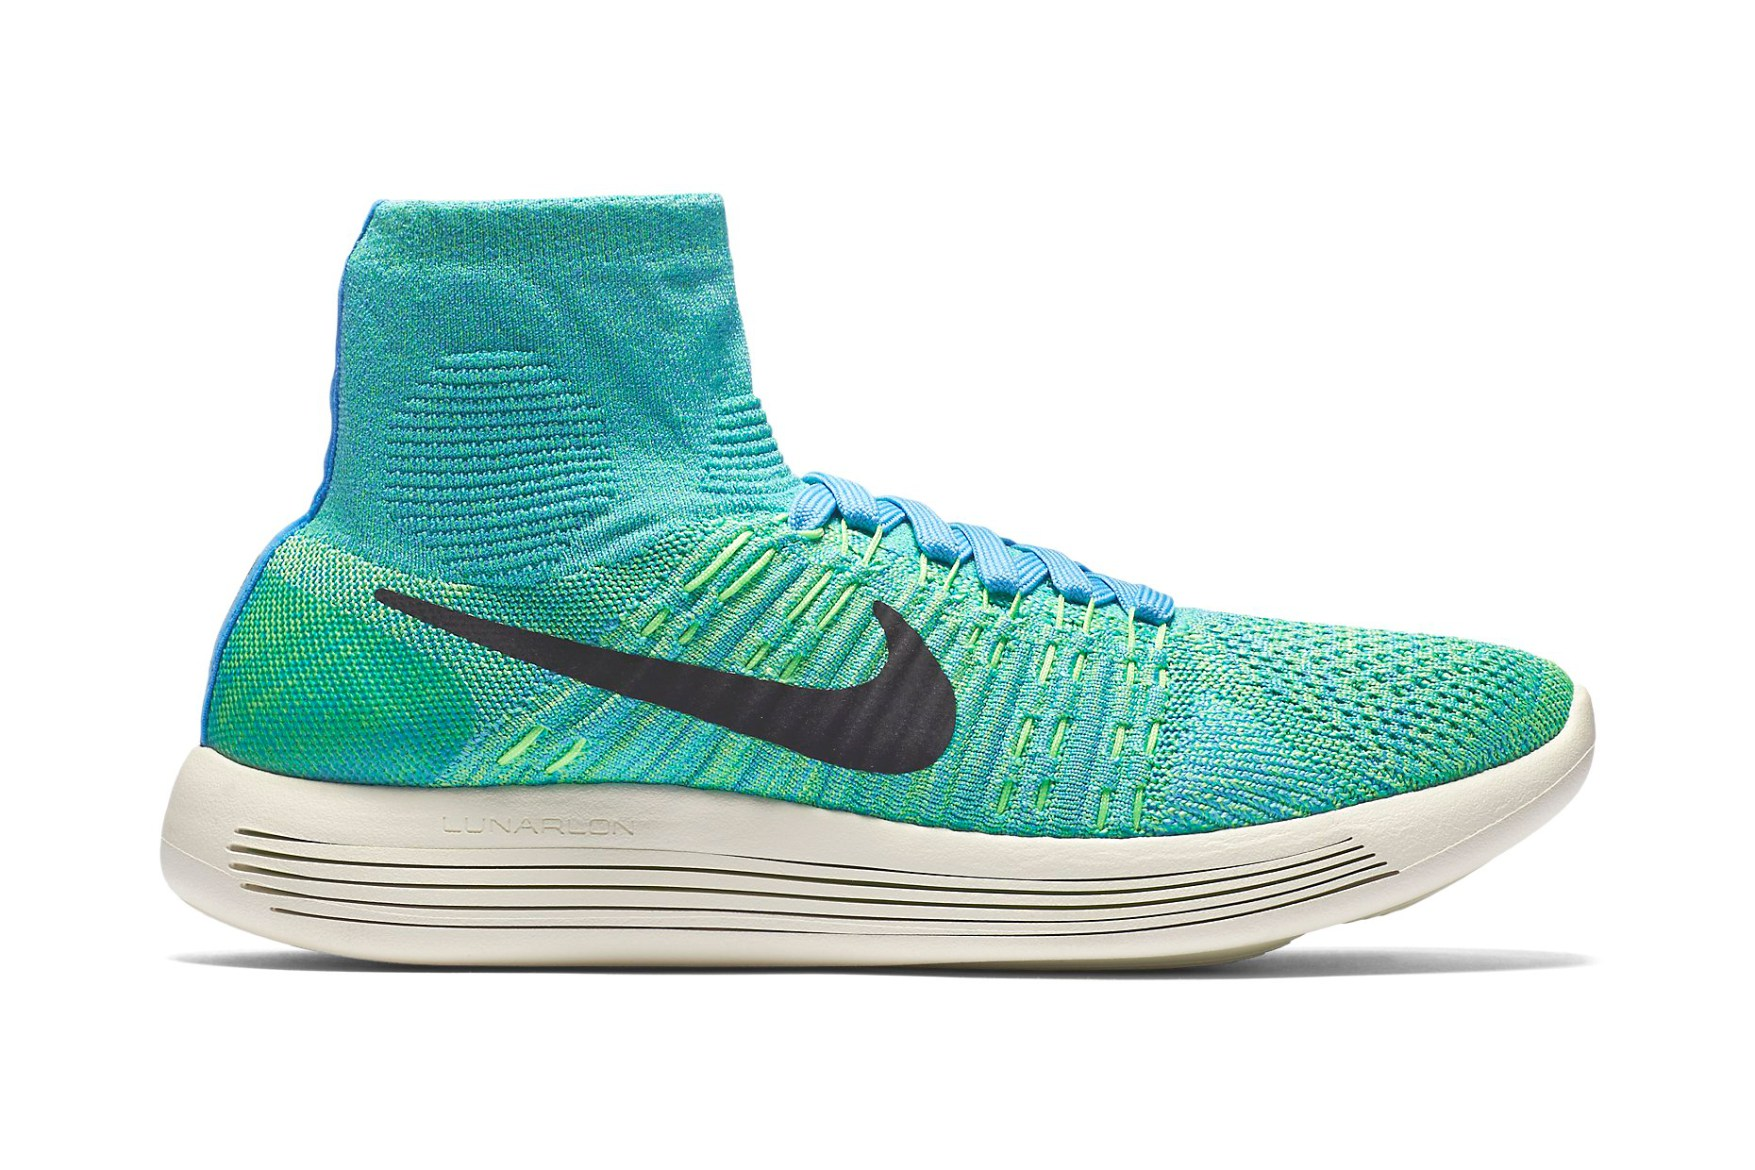 The Nike LunarEpic Flyknit in a Rainbow of Colors